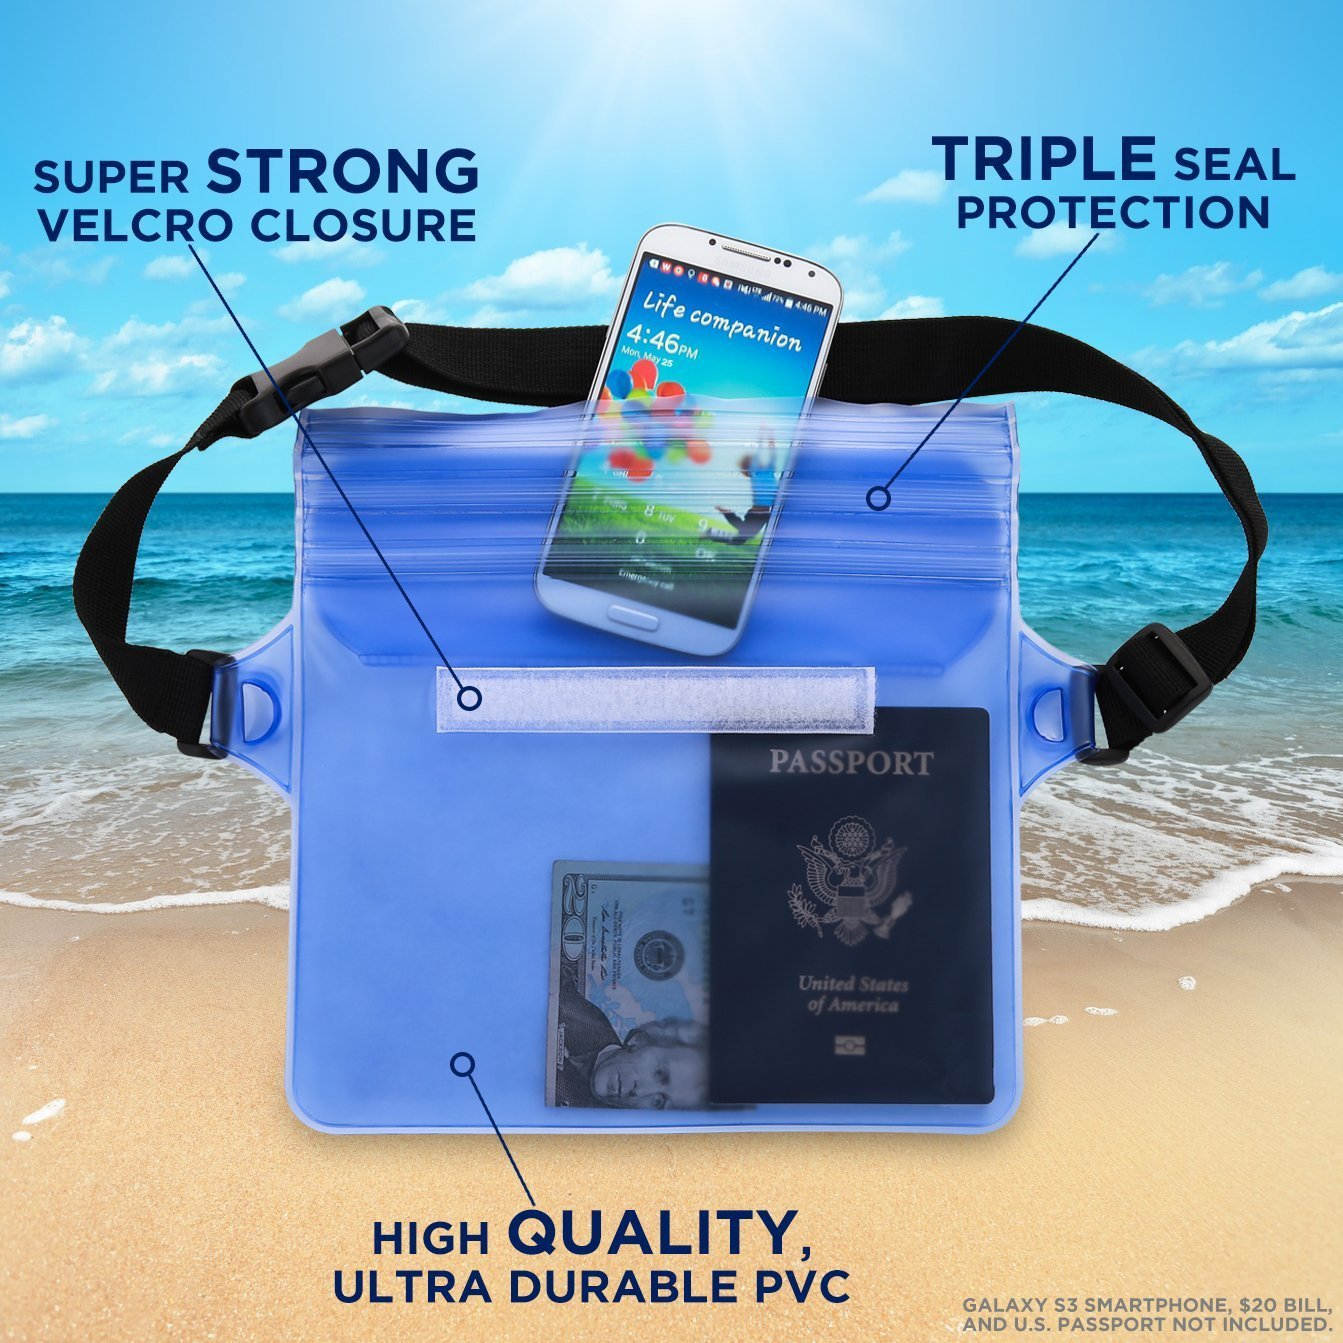 HECOPRO Waterproof Pouch with Waist Strap (2 Pack) Best Way to Keep Your Phone and Valuables Safe and Dry Perfect for Boating Swimming Snorkeling Kayaking Beach Pool Water Parks (Black + Blue)